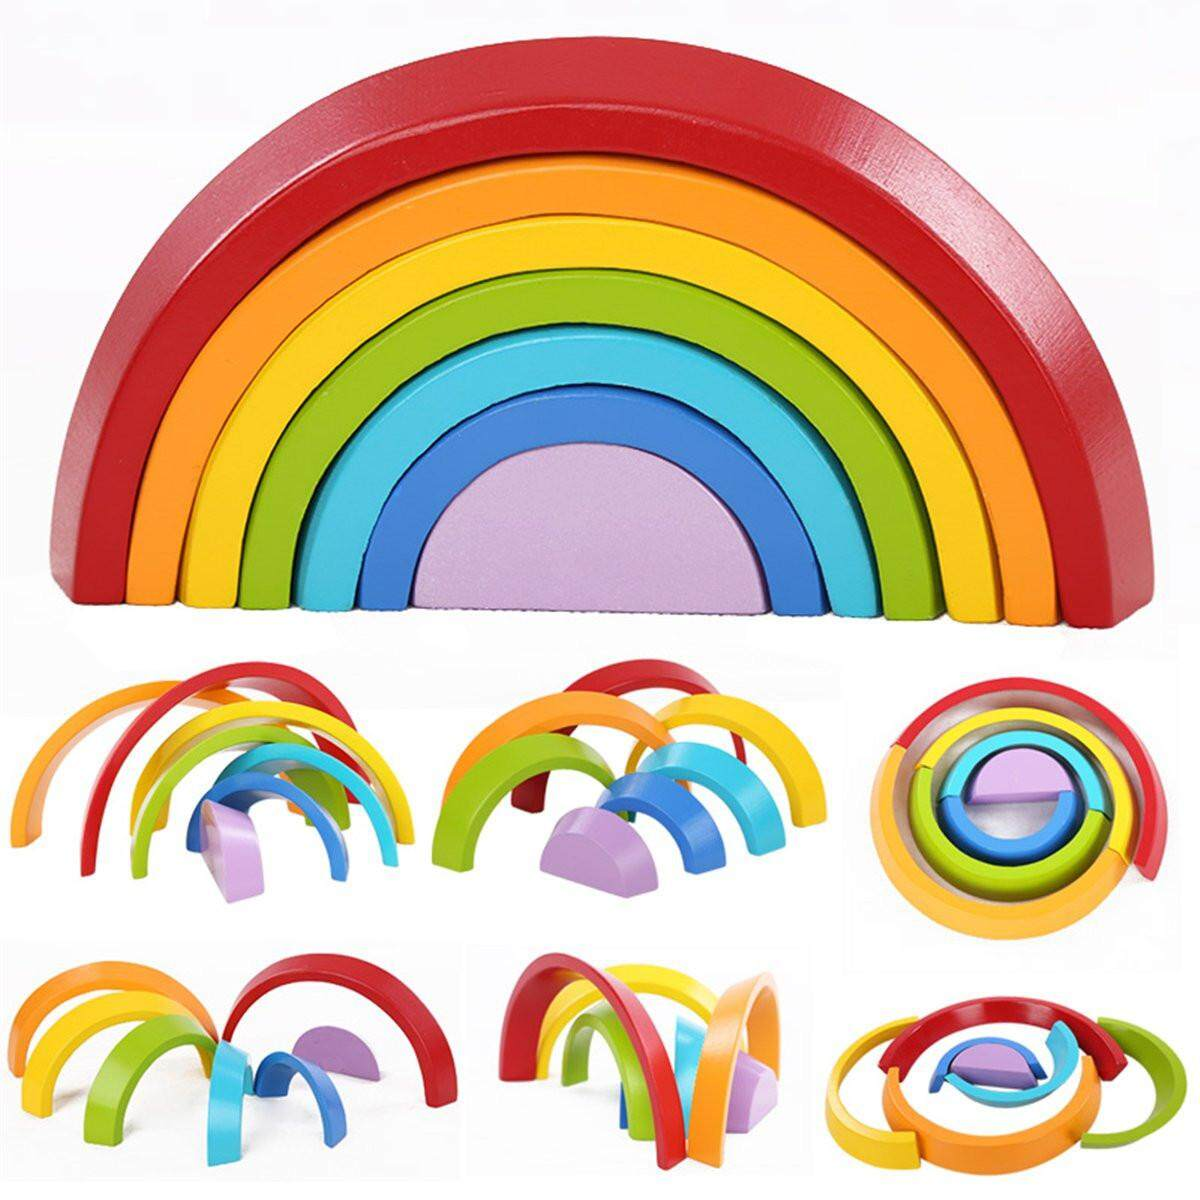 7 Color Wooden Stacking Rainbow Shape Brick Kids Childrens Educational Toy Set By Glimmer.